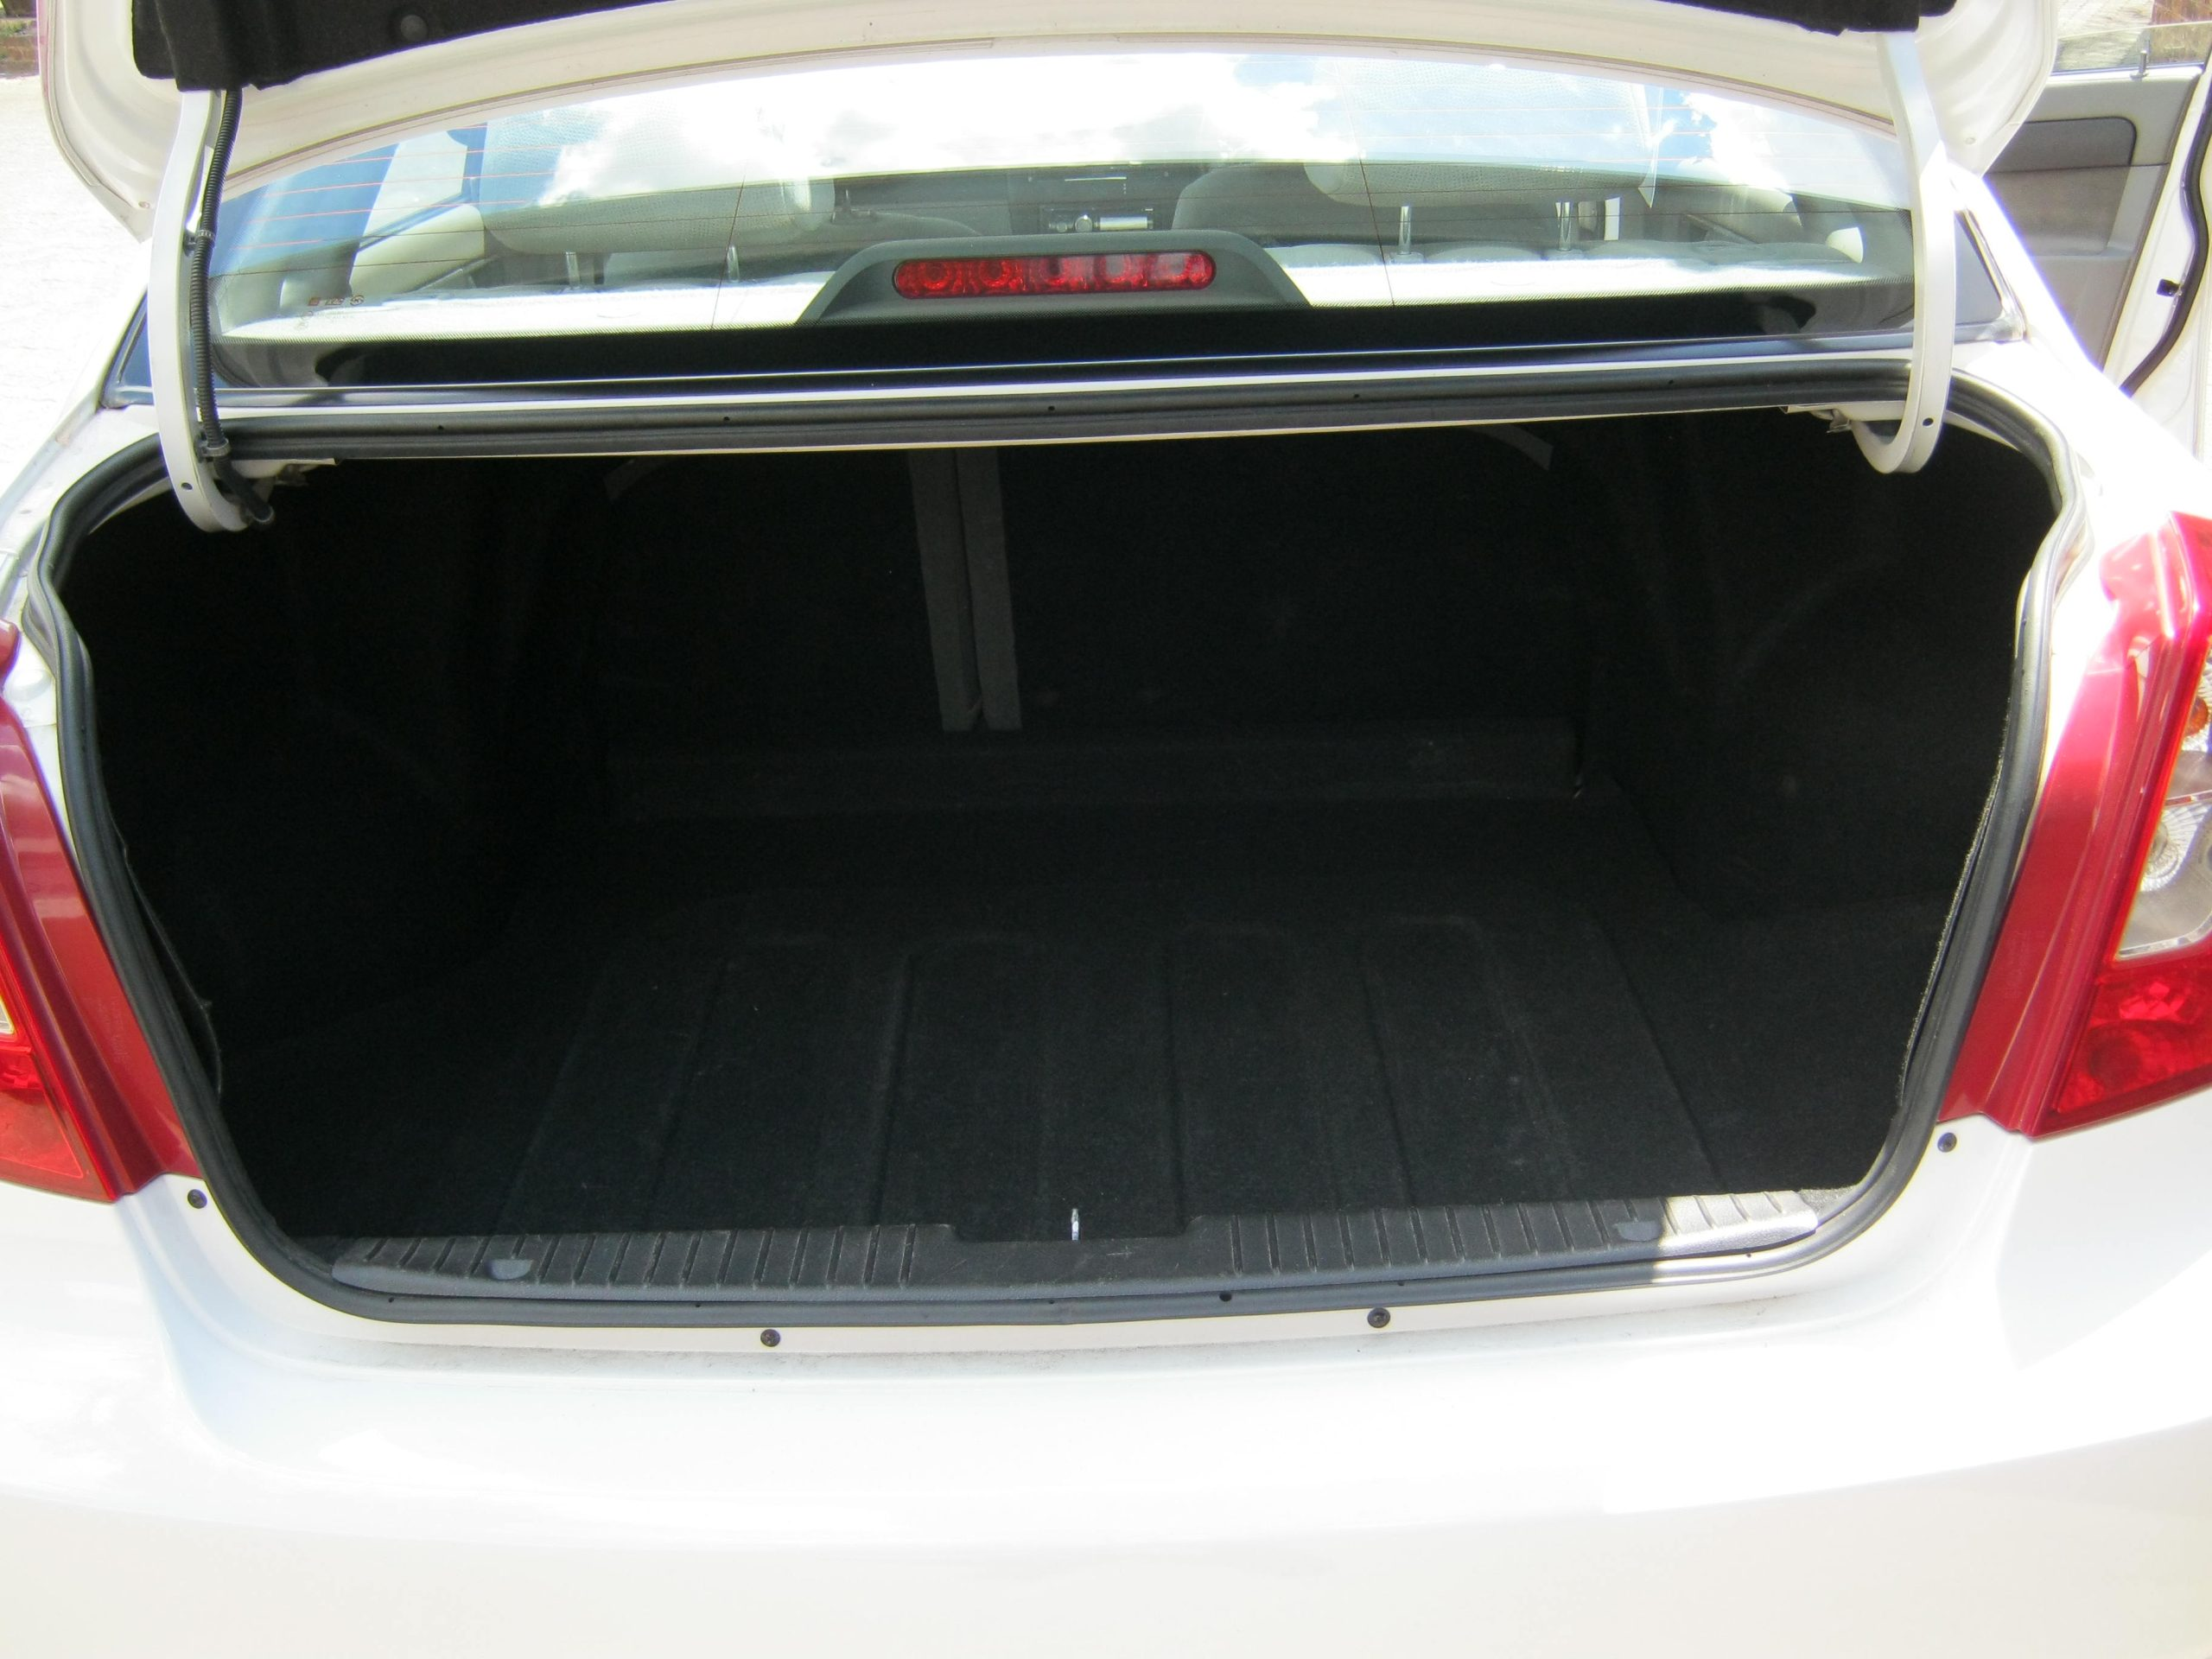 Chevrolet Optra 1.6L White Luggage Compartment Earn A Car